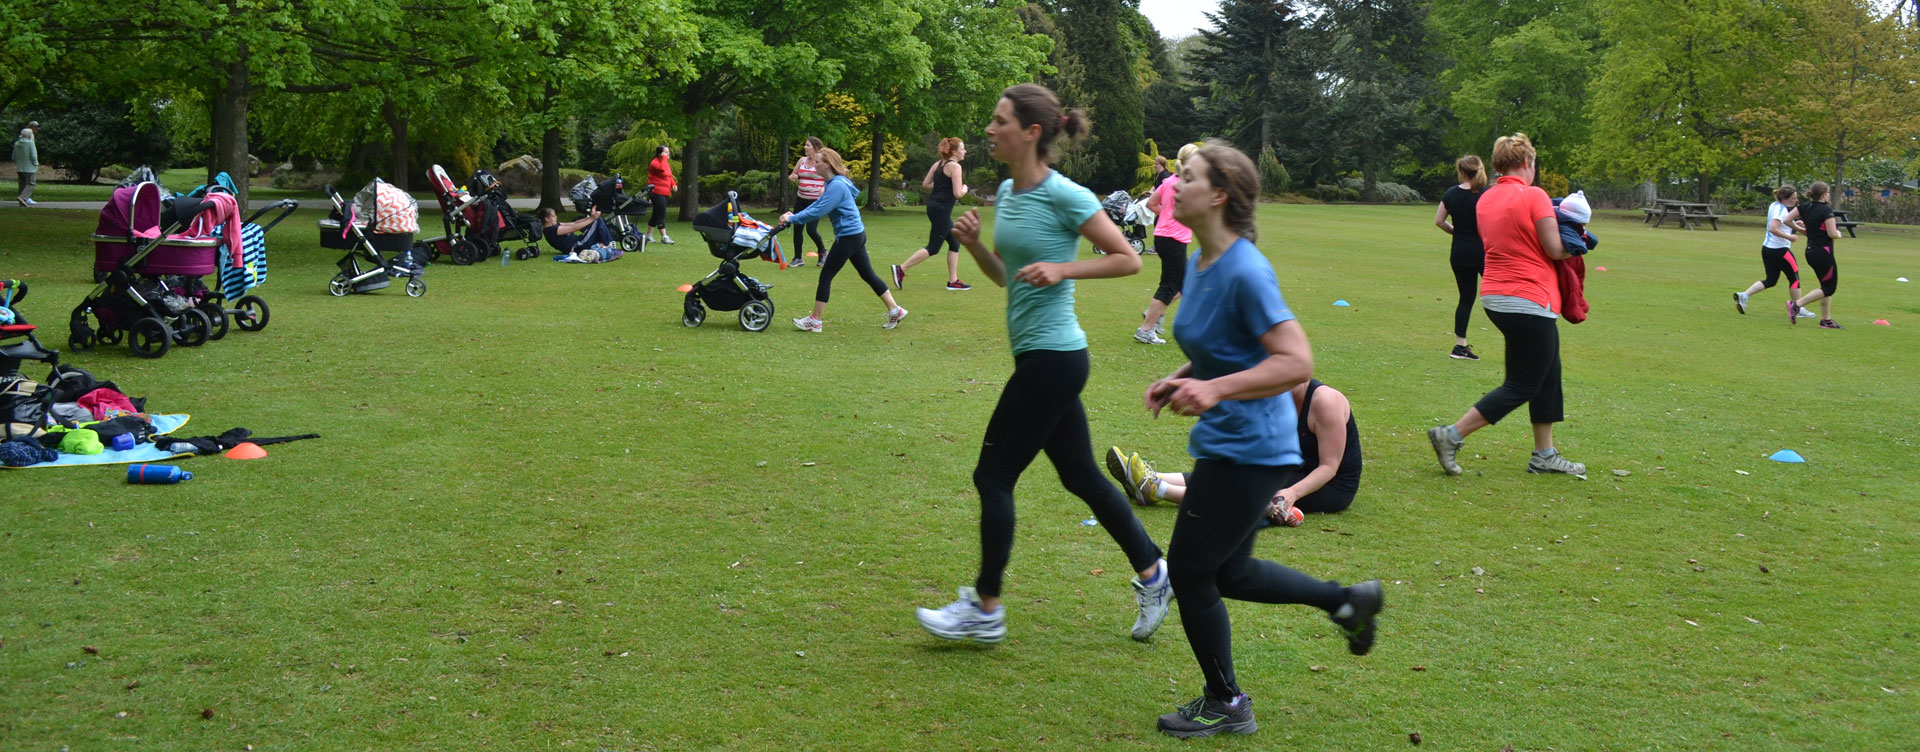 Prams in the Park The most effective way to get up and get out after having your baby! This hour-long class is a postnatal programme designed to be fun and interactive, whatever fitness stage you are at, using your own bodyweight and keeping your baby alongside you in its pram.